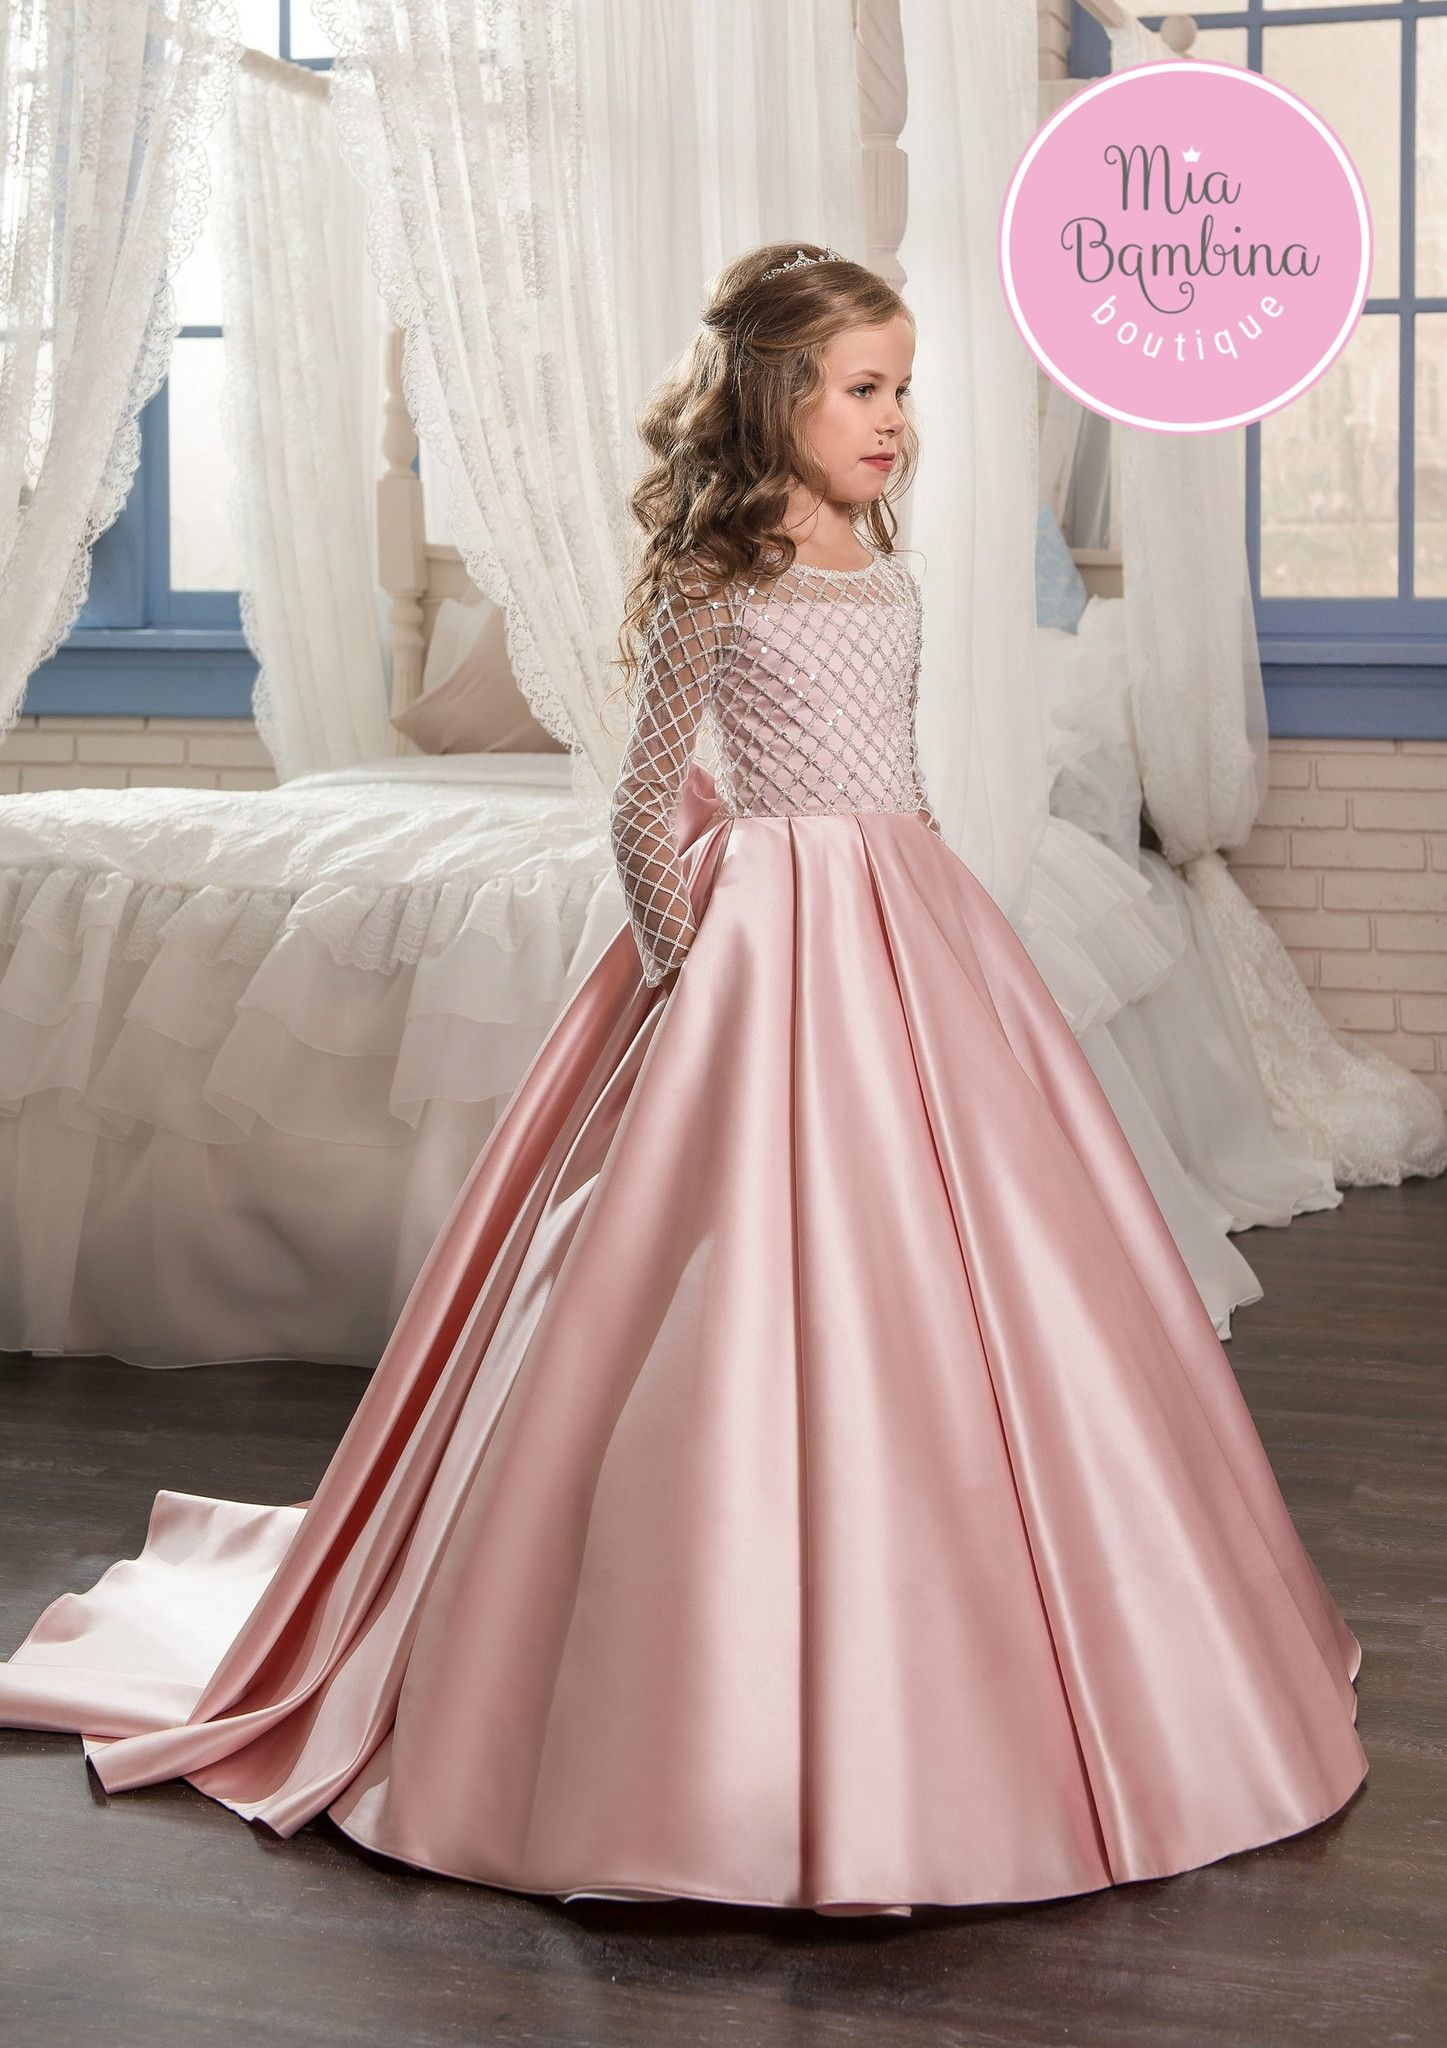 276ae614c This chic Toronto flower girl dress is a long satin ball gown for  vintage-inspired